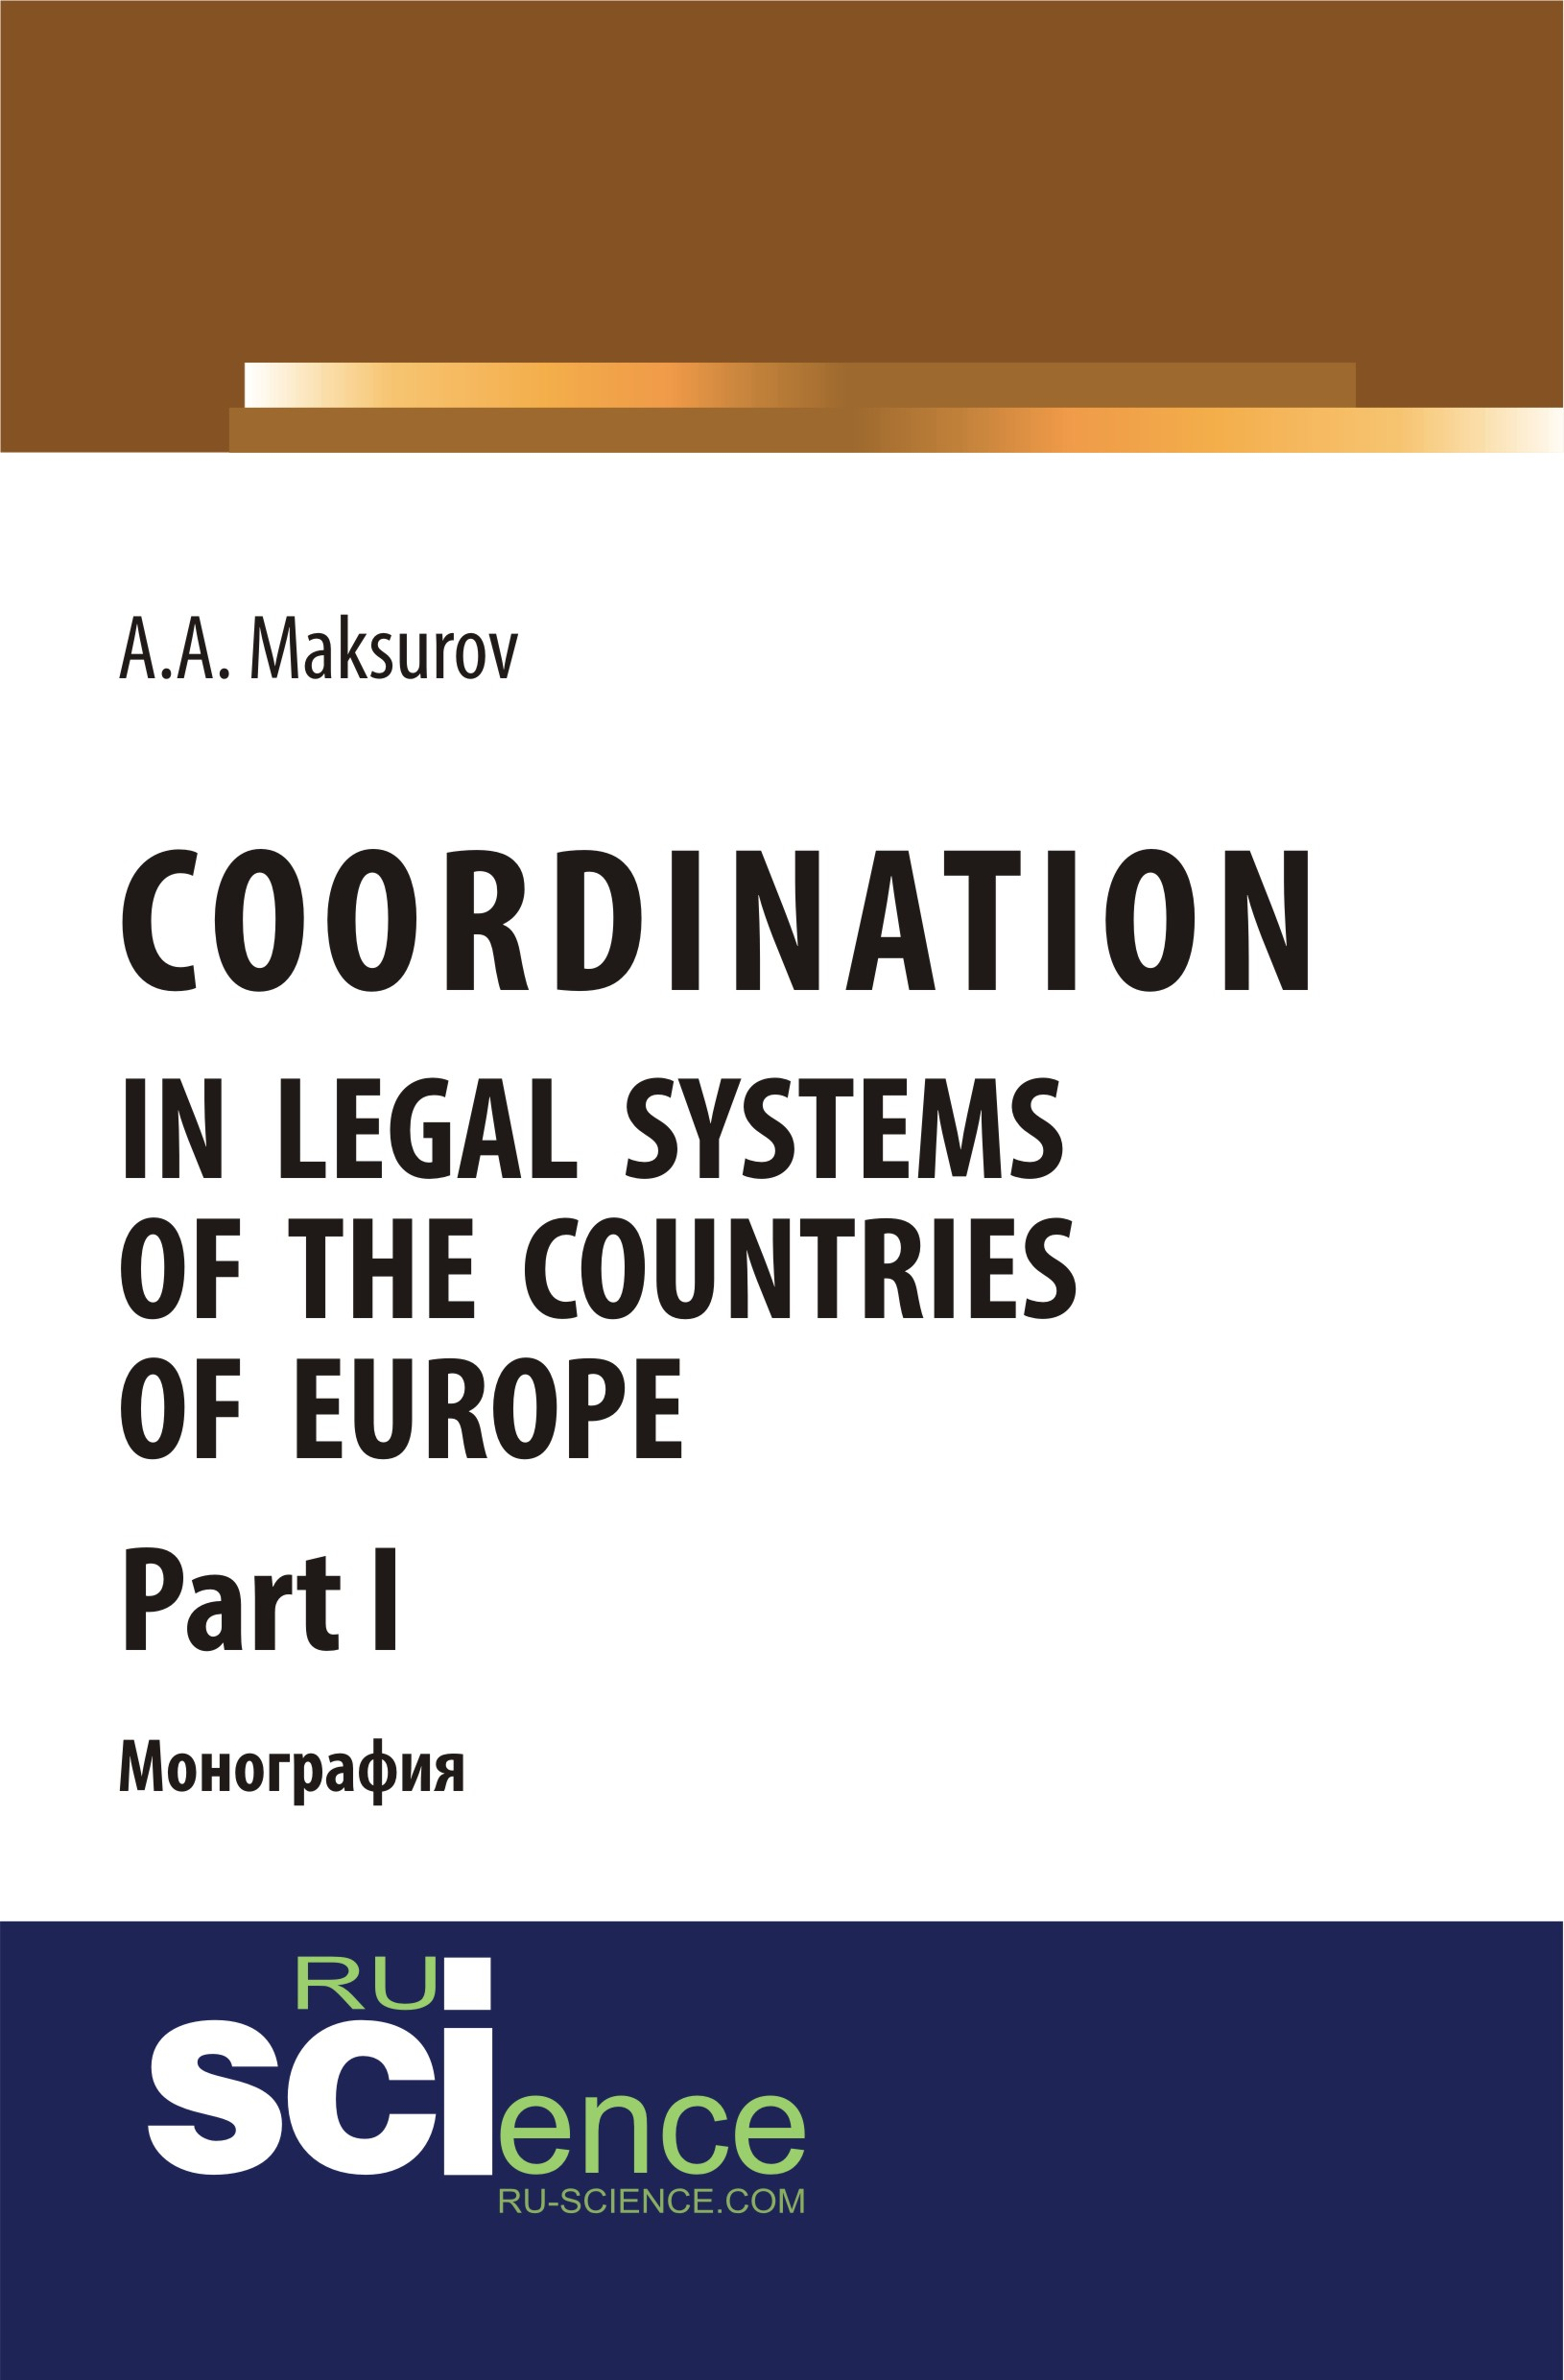 А. А. Максуров Coordination in legal systems of the countries of Europe. Part I смеситель milardo bering be270bw6k w21mi